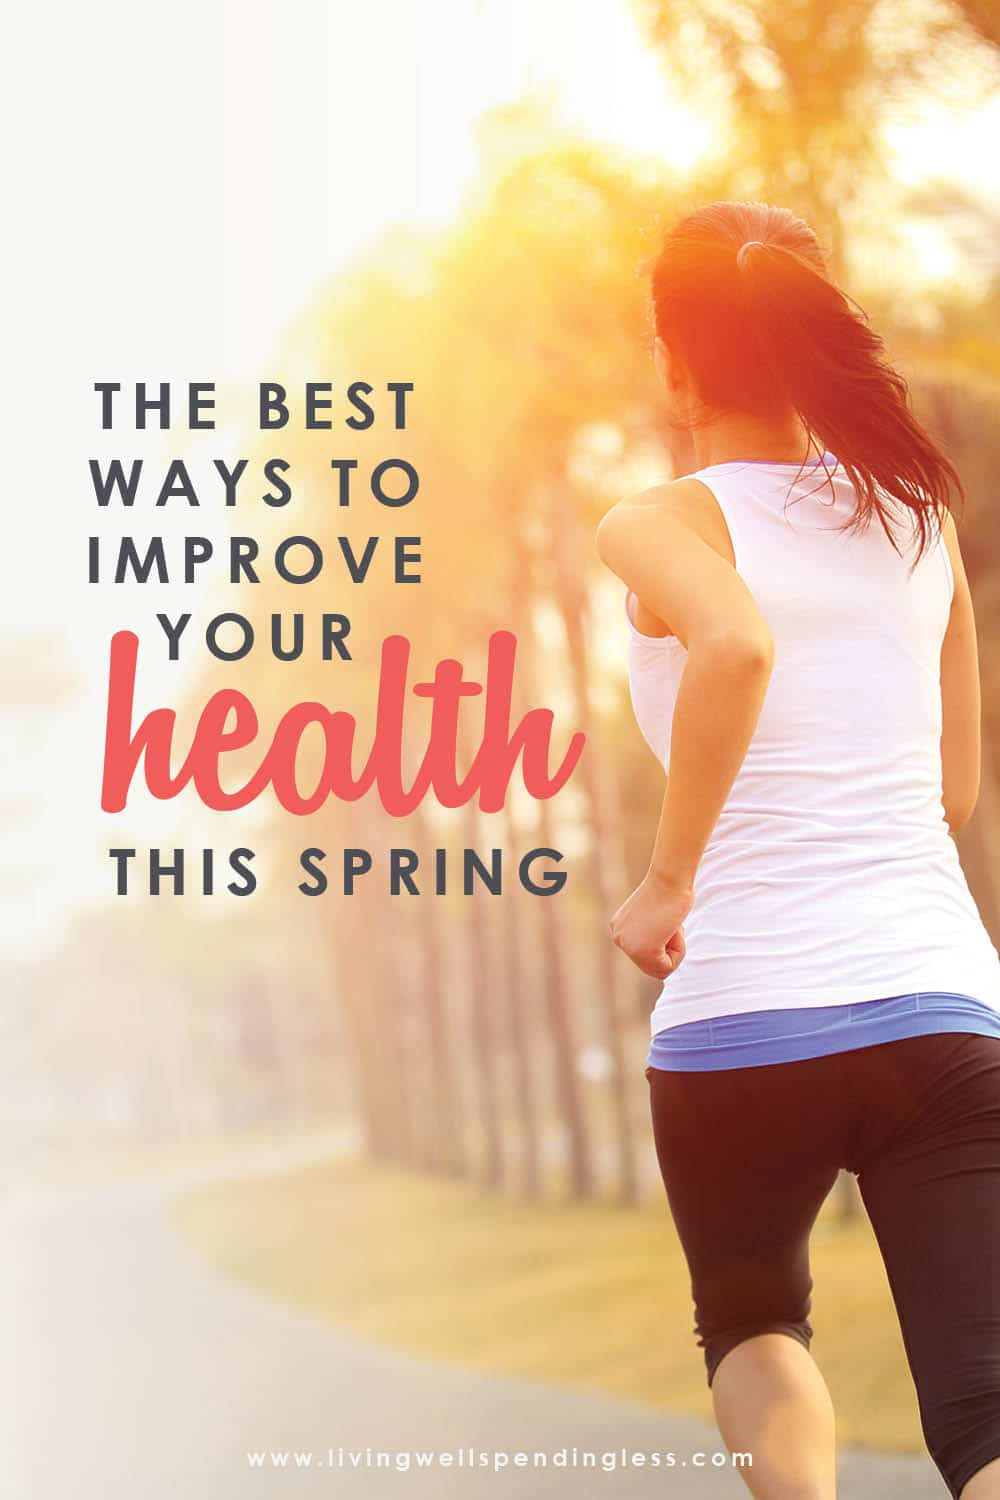 Want to feel good and be happier this Spring? These easy ways to improve your health will change your life and transform your everyday habits for the better! Start small and build up to bigger habits that will get you where you want to be in no time. #lifetips #healthy #health #healthandfitness #healthtips #springintoshape